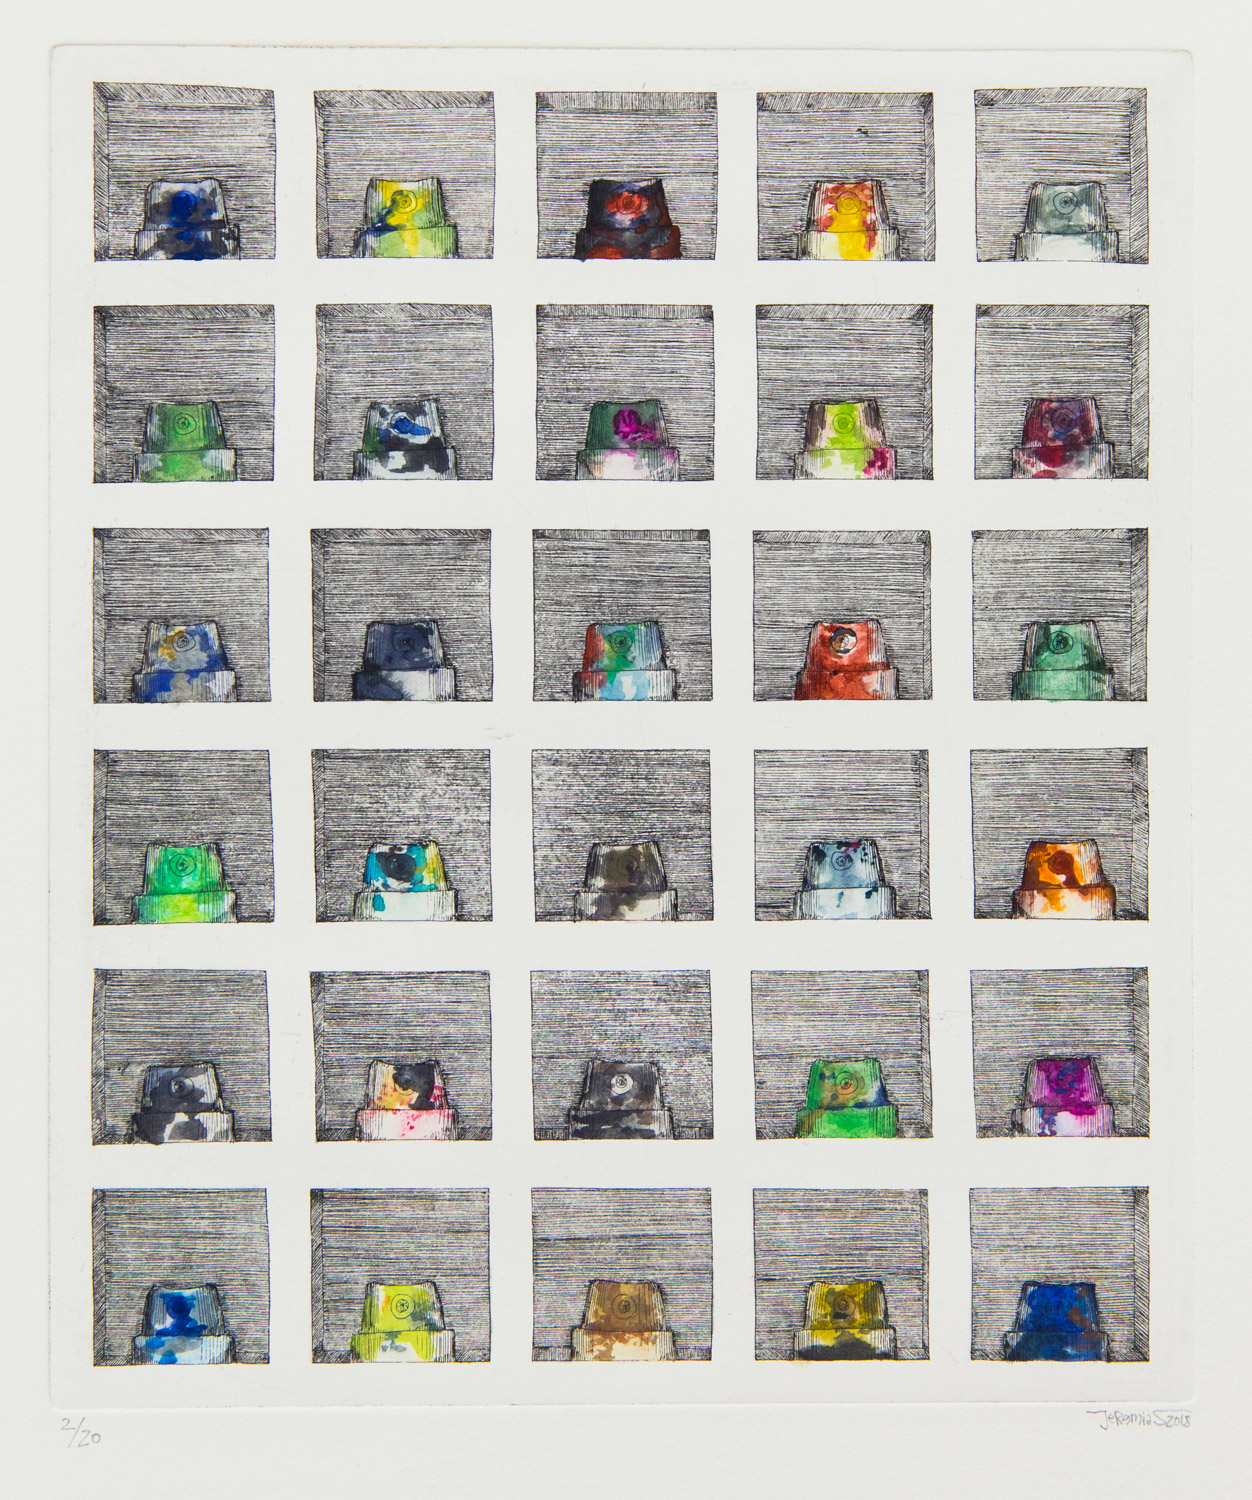 Nozzlebox 2D; Etching on Chest; plate size 26 x 31 cm, paper size 39 x 52 cm; edition 20; each page hand-coloured; 2018